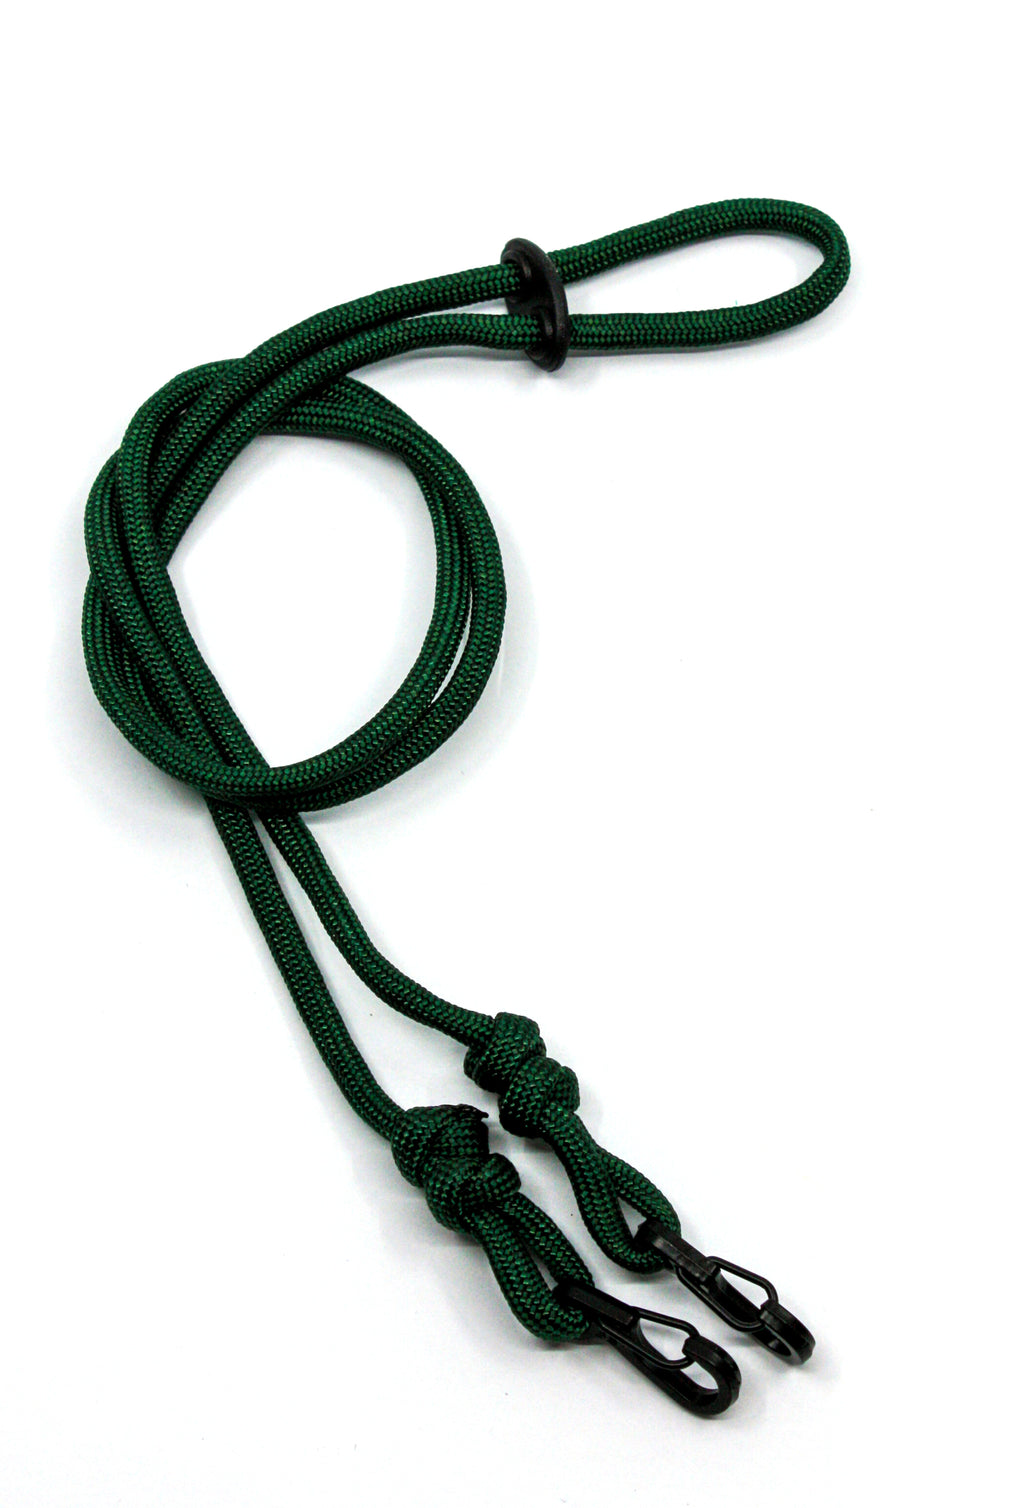 XIX_FACEMASK_LANYARDS_PARACORD_EmeraldGreen